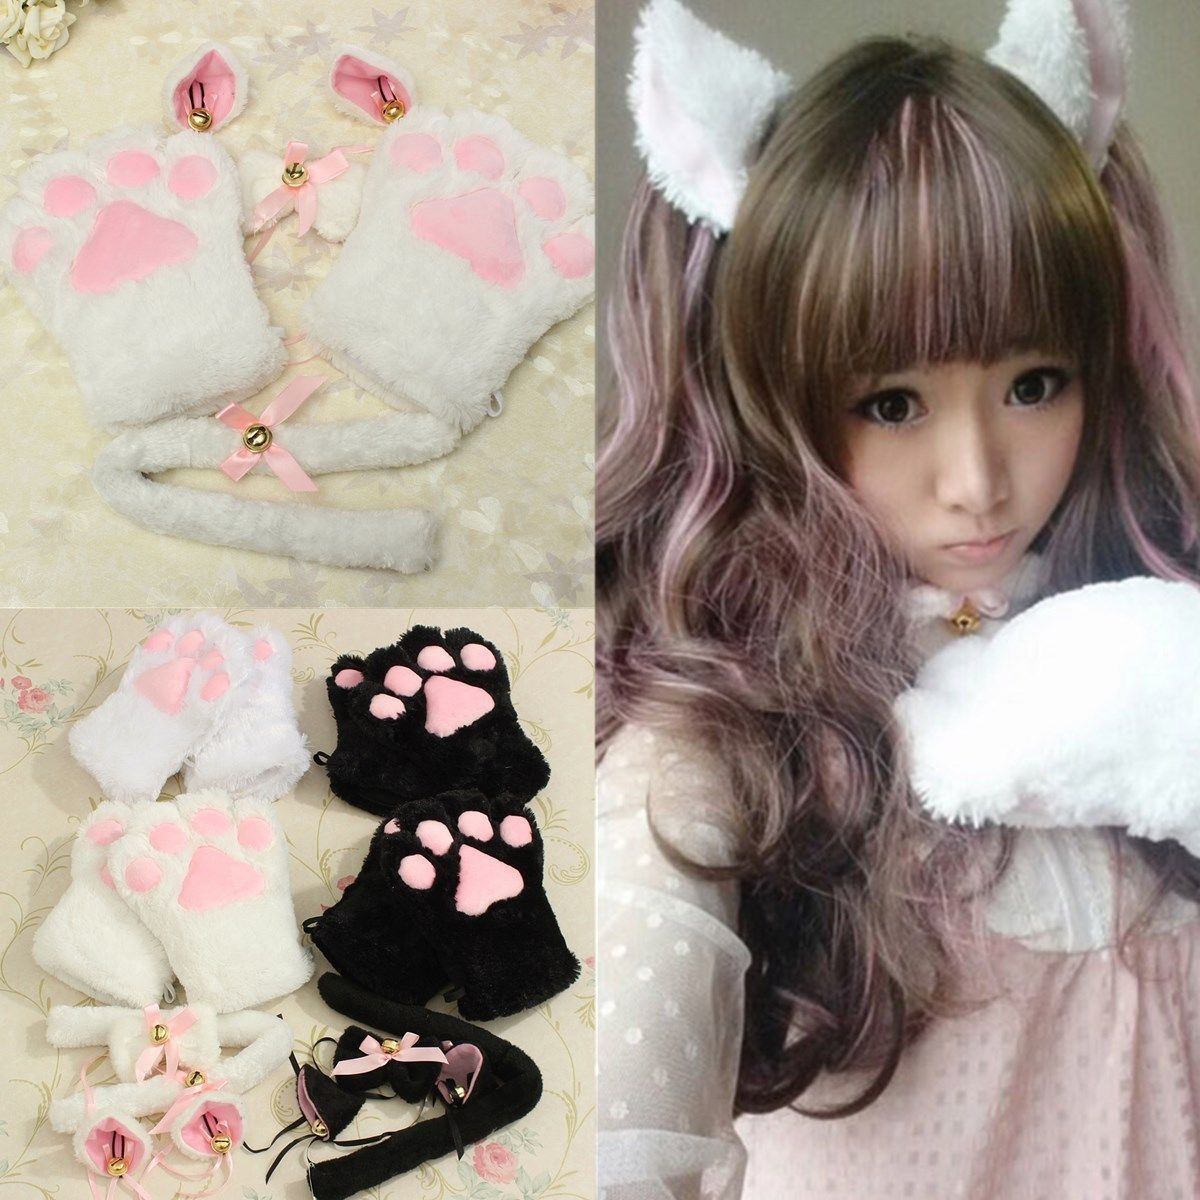 Kitten Cat Maid Cosplay Role Play Anime Costume Gloves Paw Ear Tail Tie Party Maid Cosplay Anime Costumes Costume Gloves